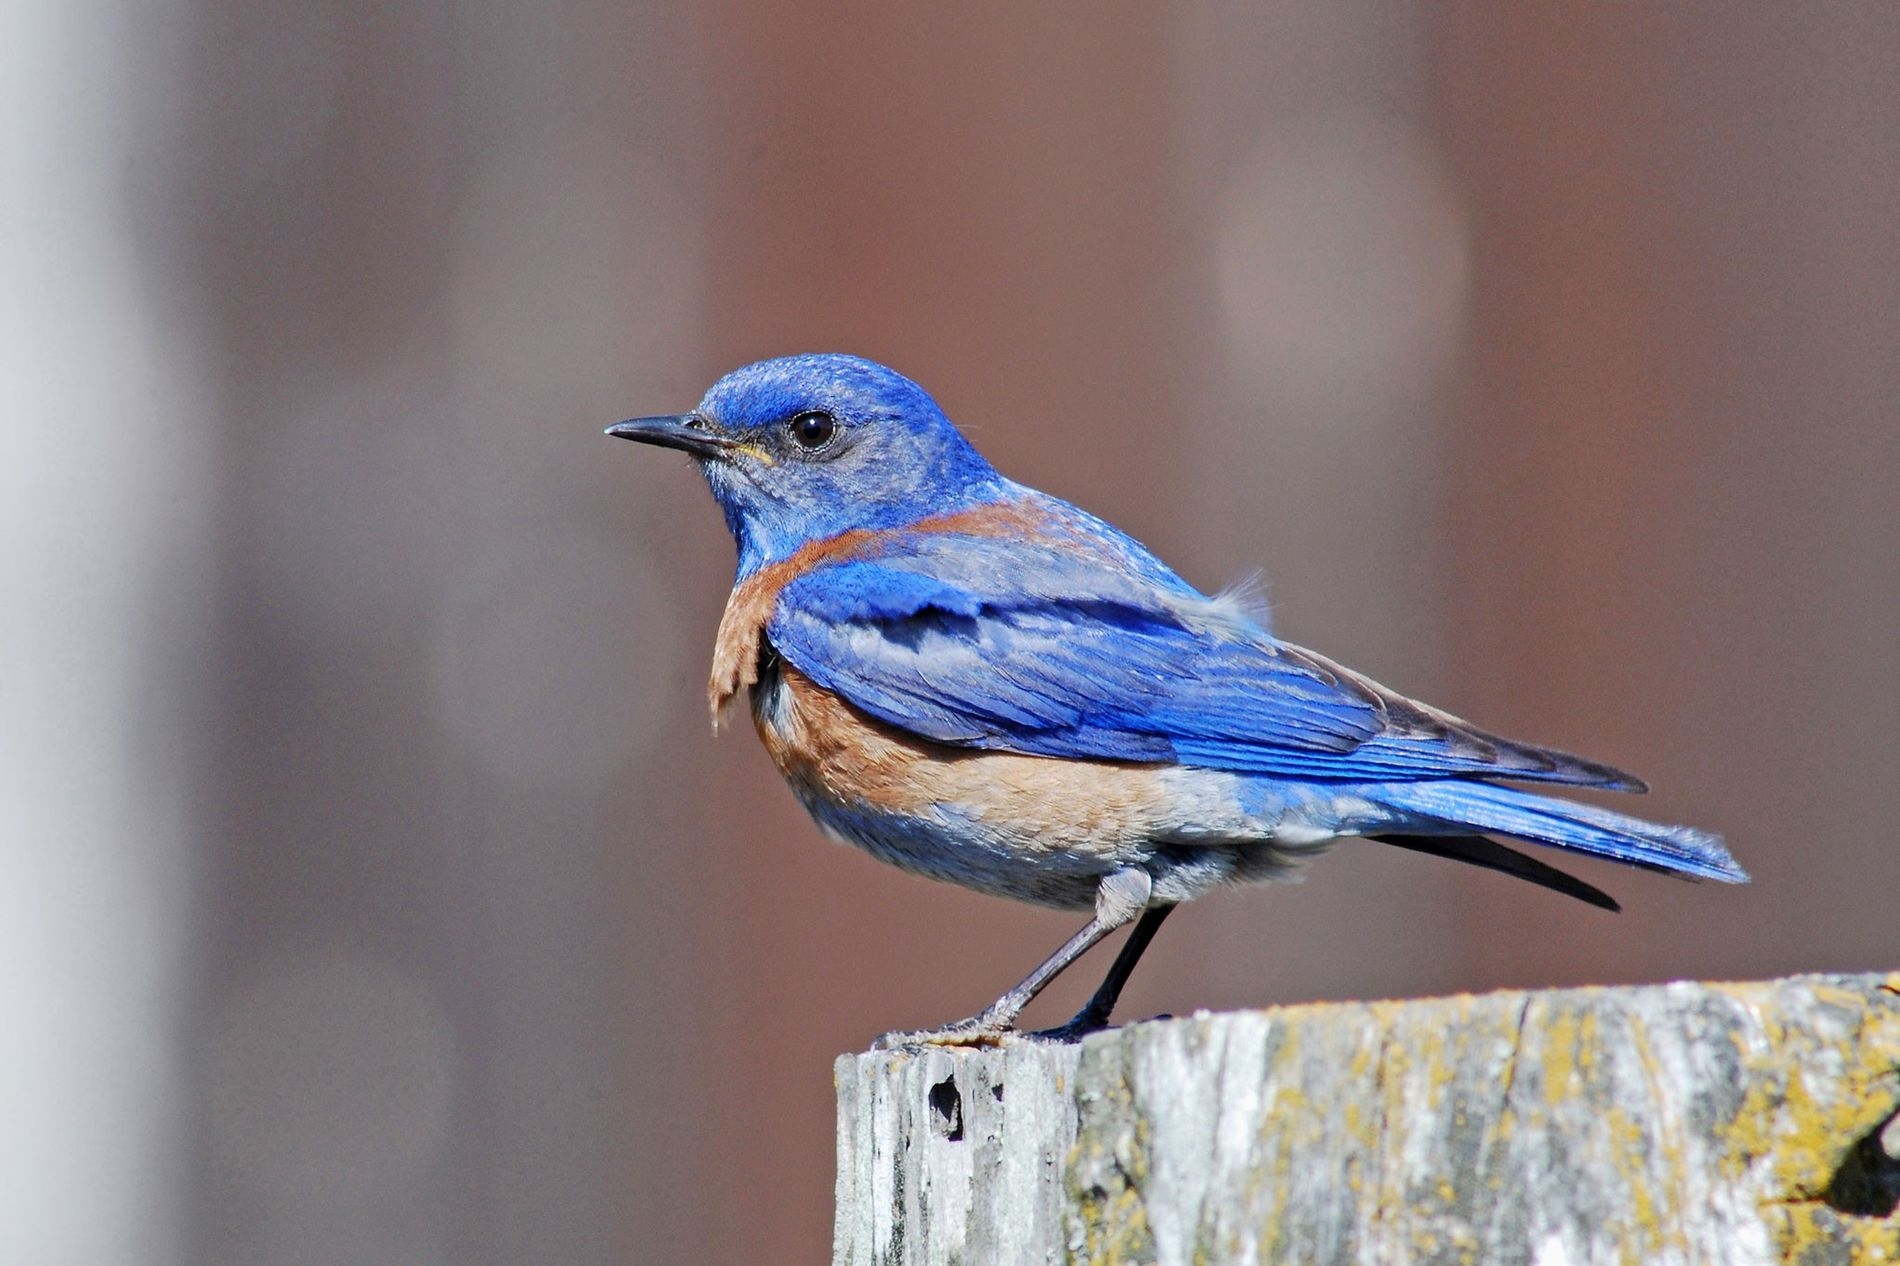 Western bluebirds nesting near oil and gas operations may not realize how harmful it can be ...